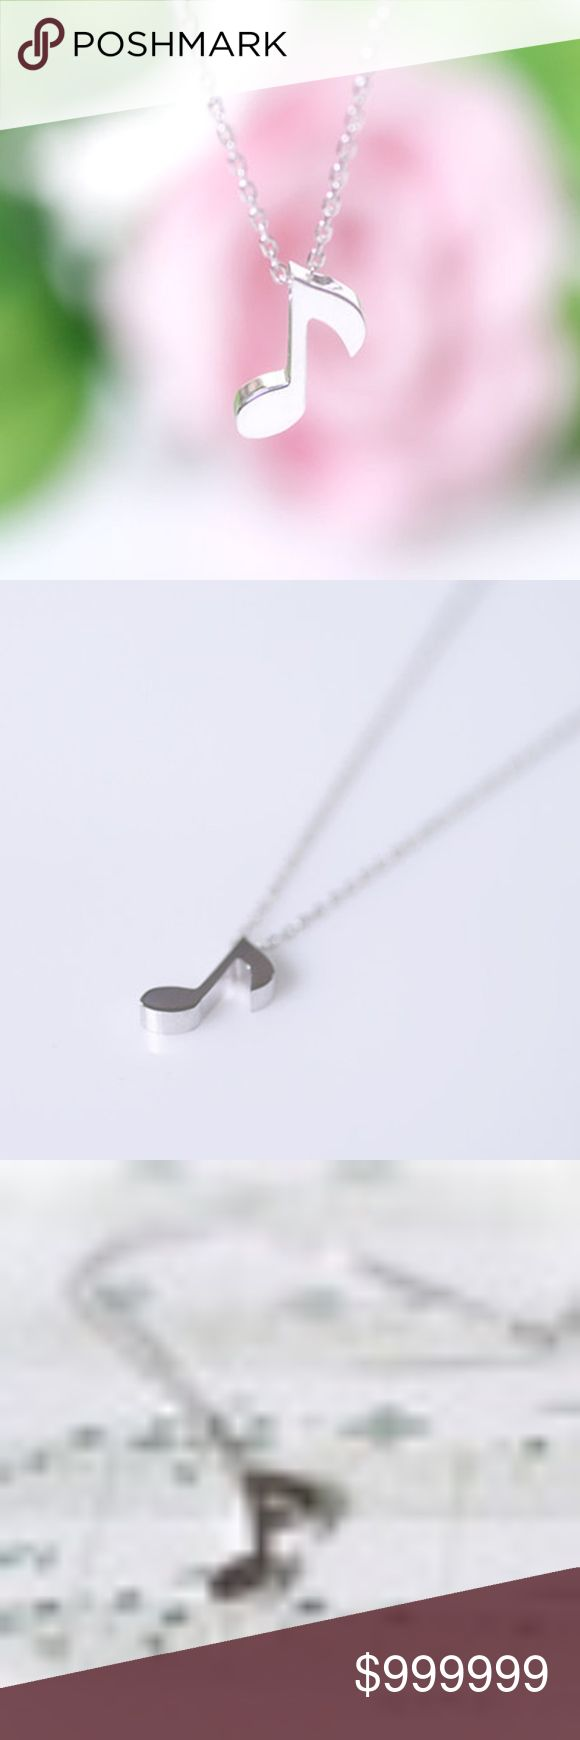 COMING SOON: Music Note Dainty Necklace Silver Like for arrival and discount shipping notification!  Music note Dainty Pendant Necklace in Silver Color 16 inches with 2 inch extender golden threads Jewelry Necklaces